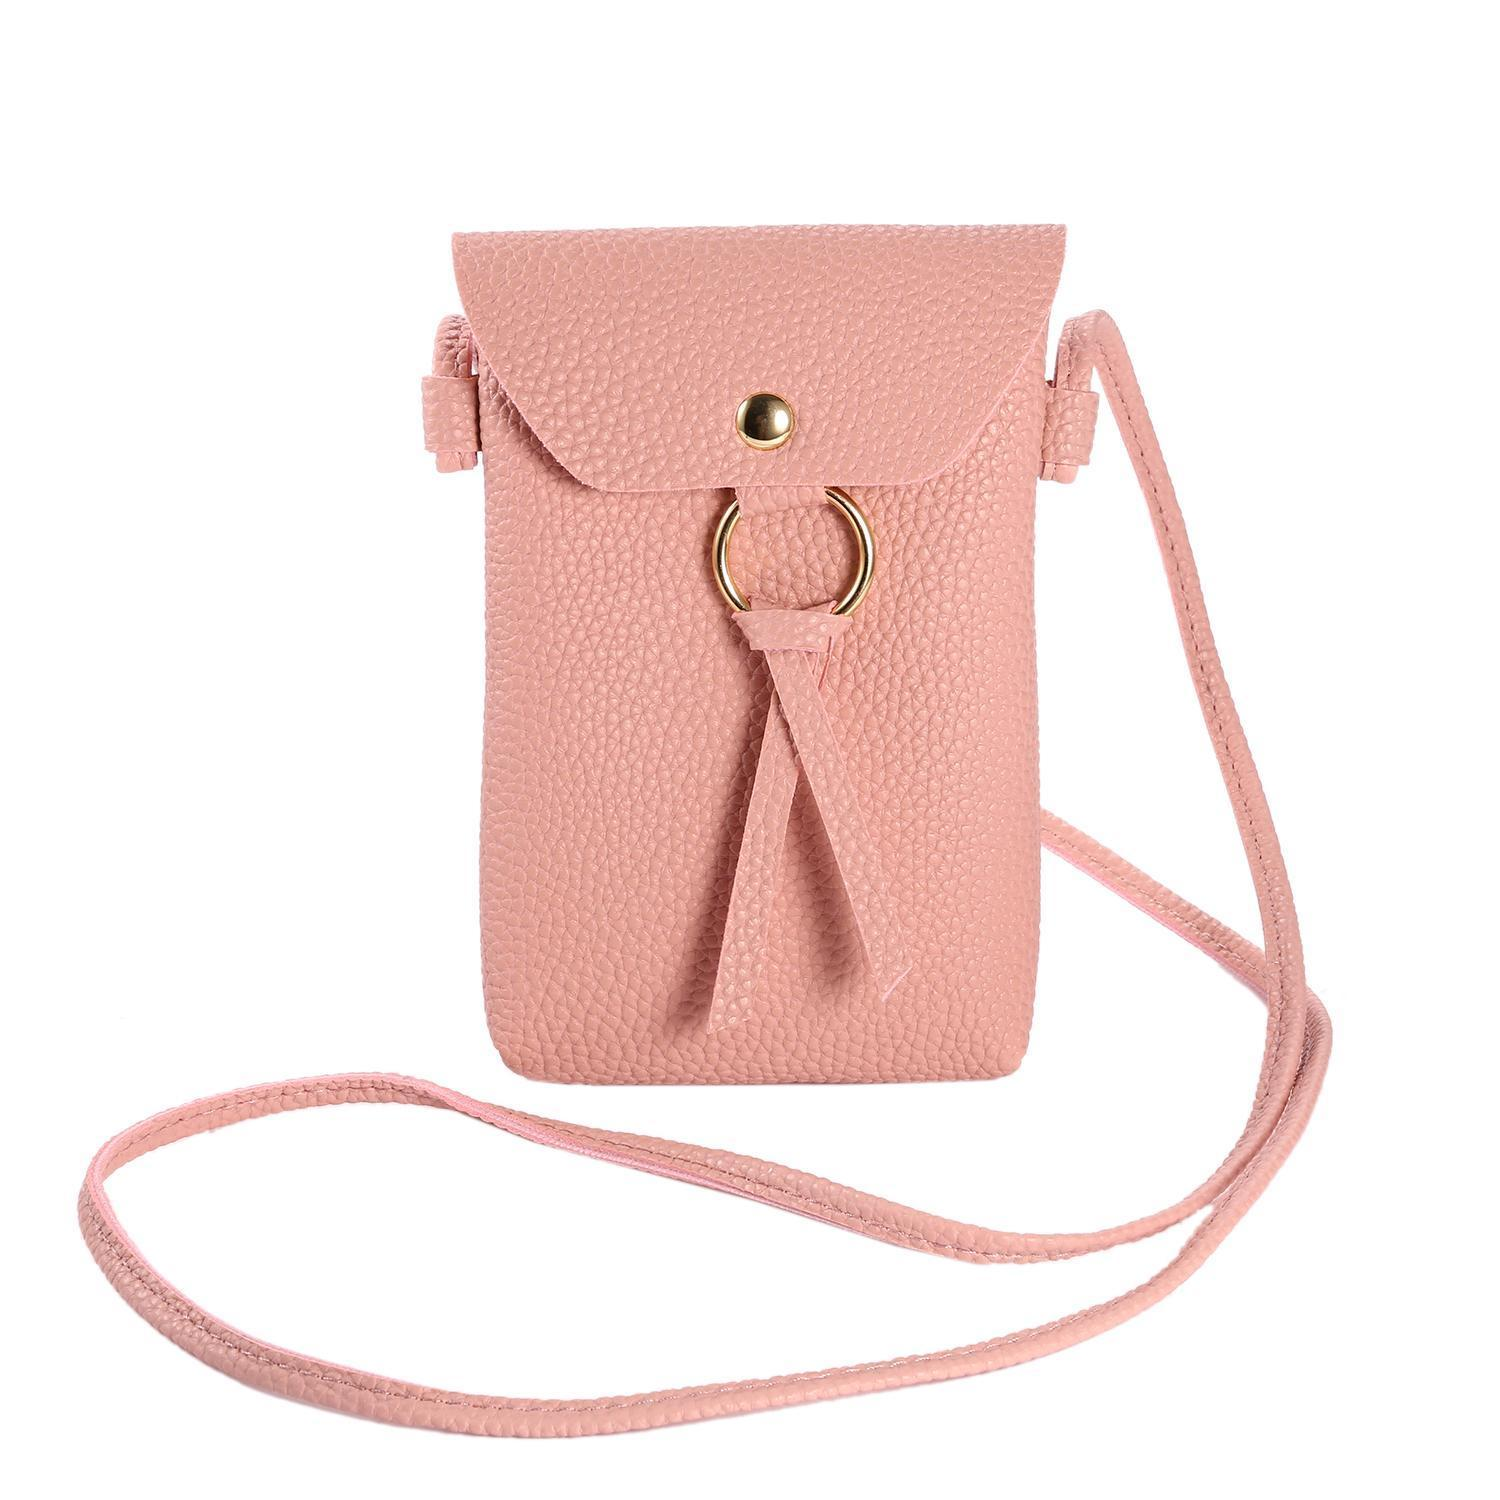 Buy Angvns Women Cross Body   Shoulder Bags at Best Prices Online in ... 8fd532d24a